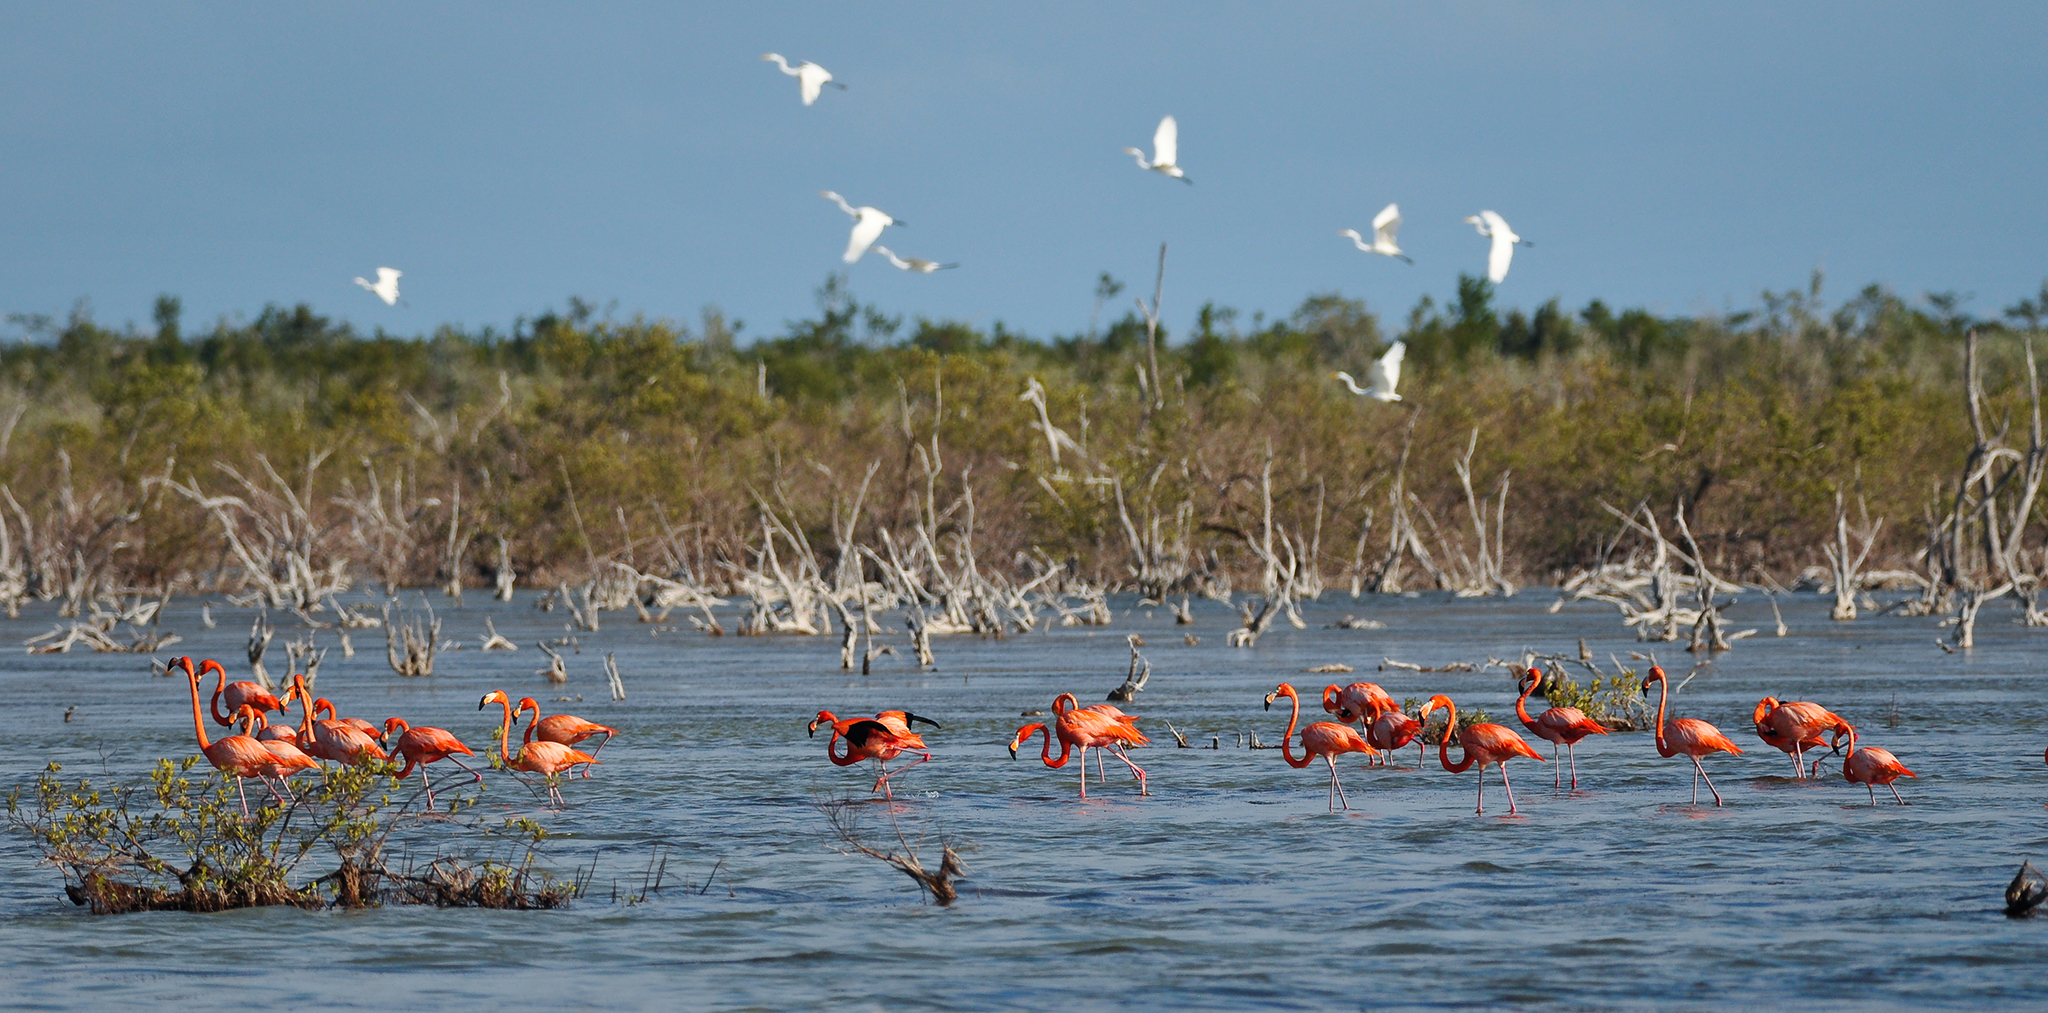 West Indian flamingoes (Phoenicopterus ruber) are just one of many species that benefit from Andros Island's vast stretches of undeveloped coastline. Photography by Marc Guitard/Getty